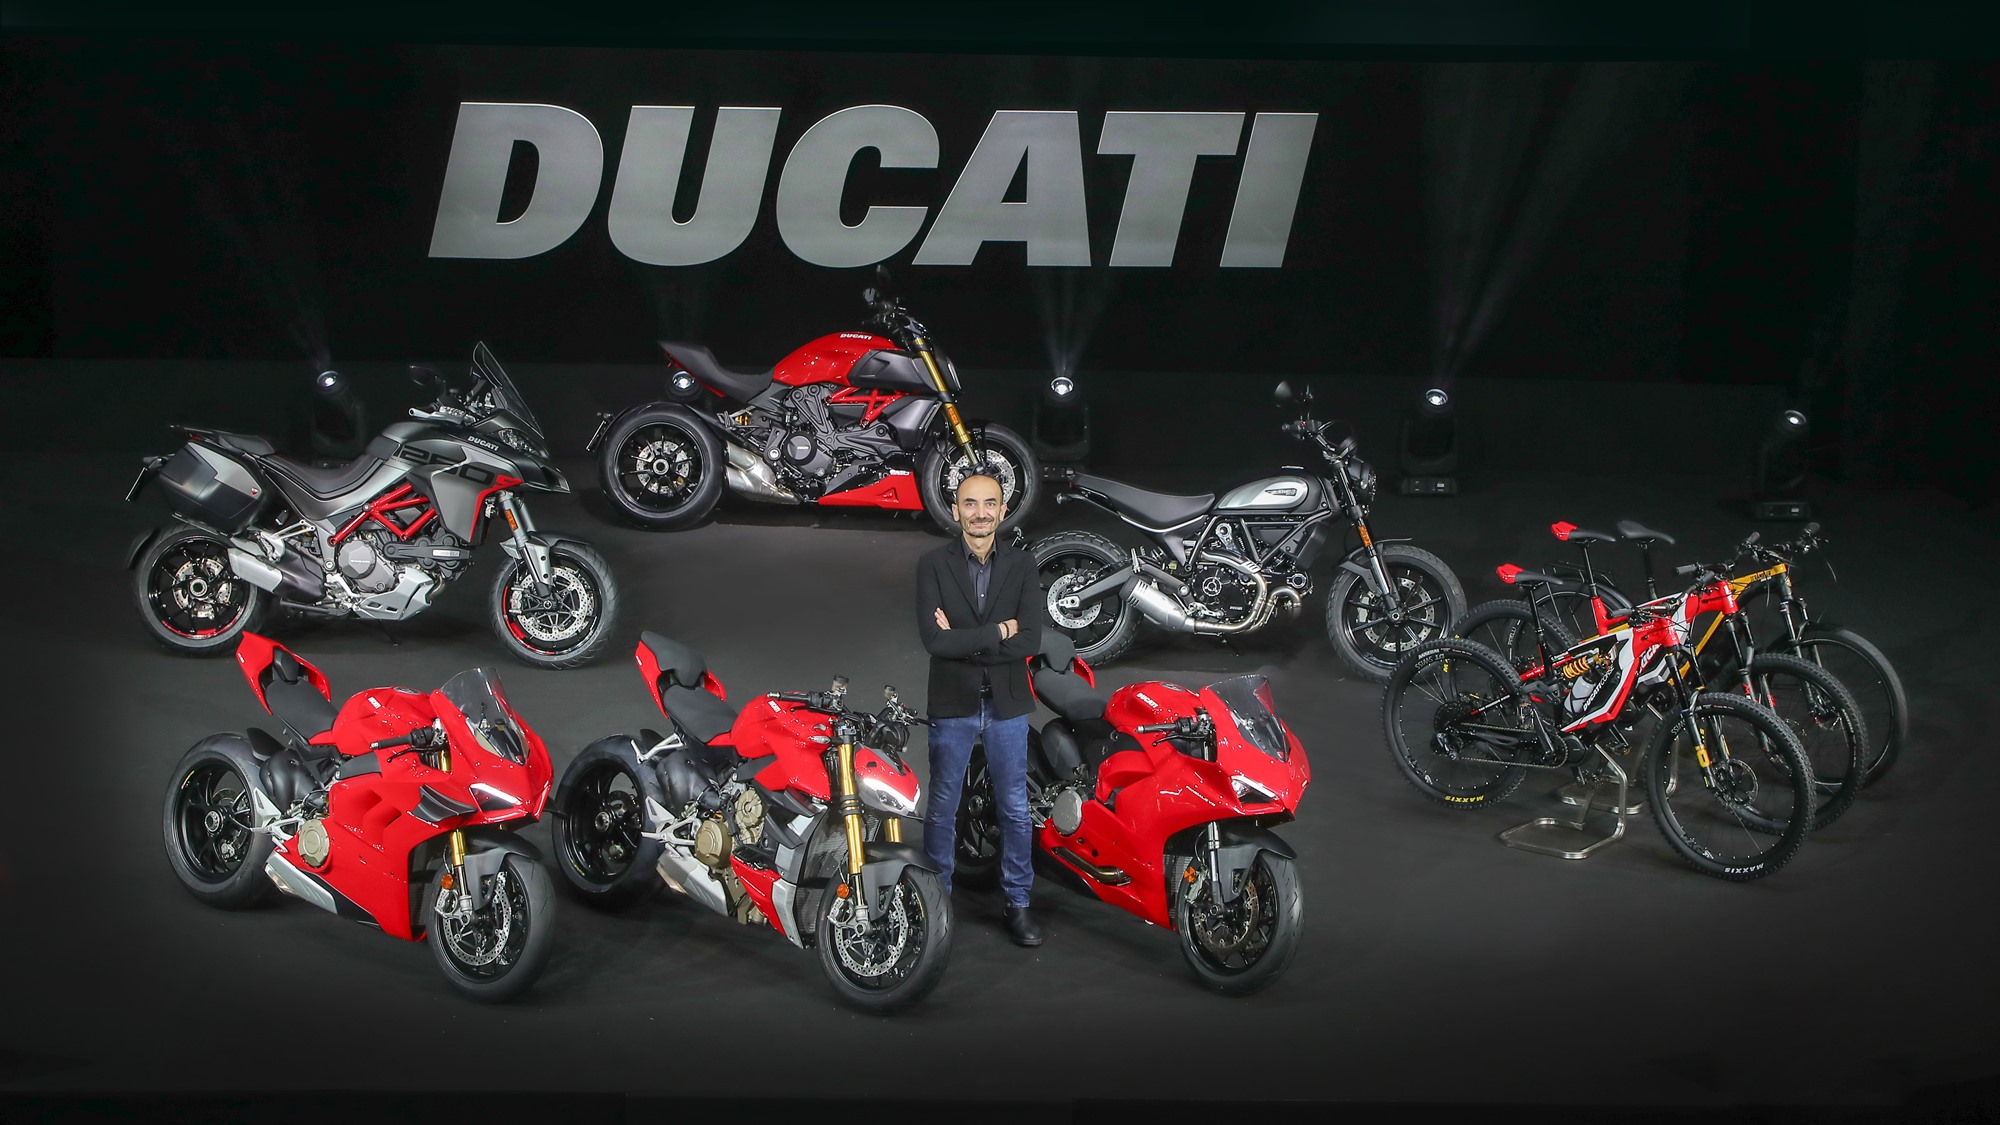 Ducati World Premiere 2020 with Claudio Domenicali